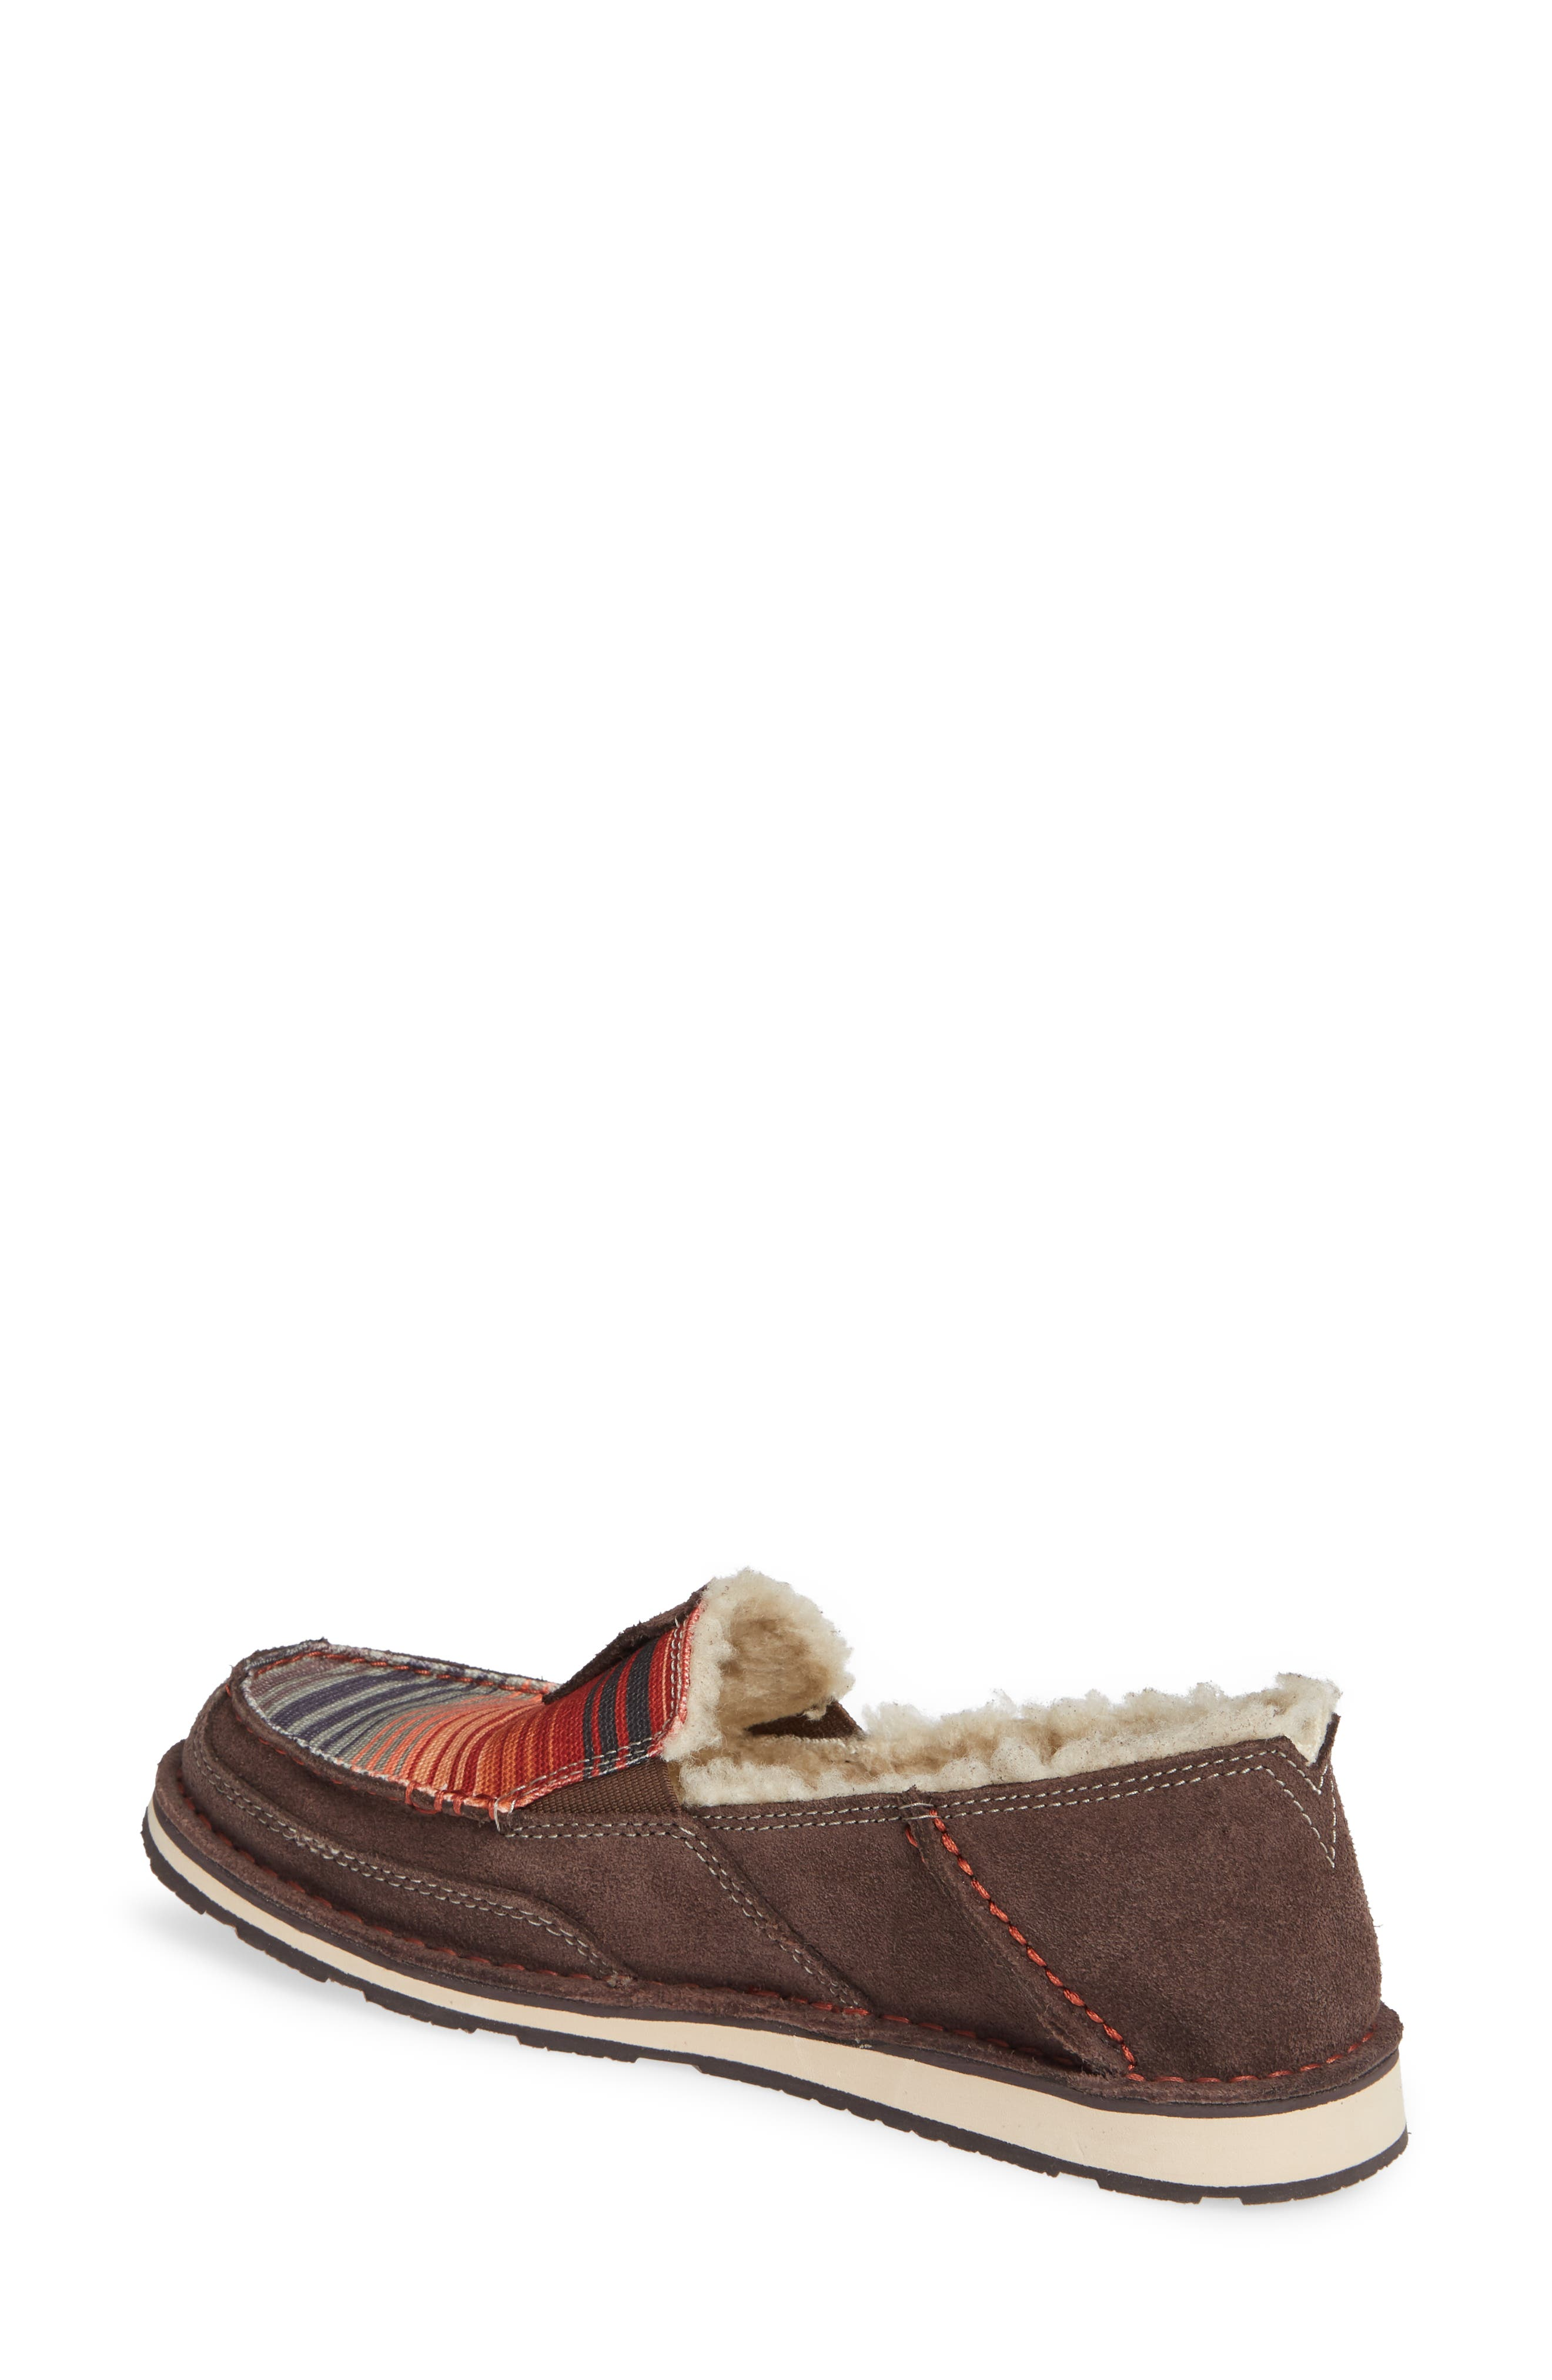 ARIAT,                             Cruiser Slip-On Loafer,                             Alternate thumbnail 2, color,                             SOUTHWESTERN FABRIC